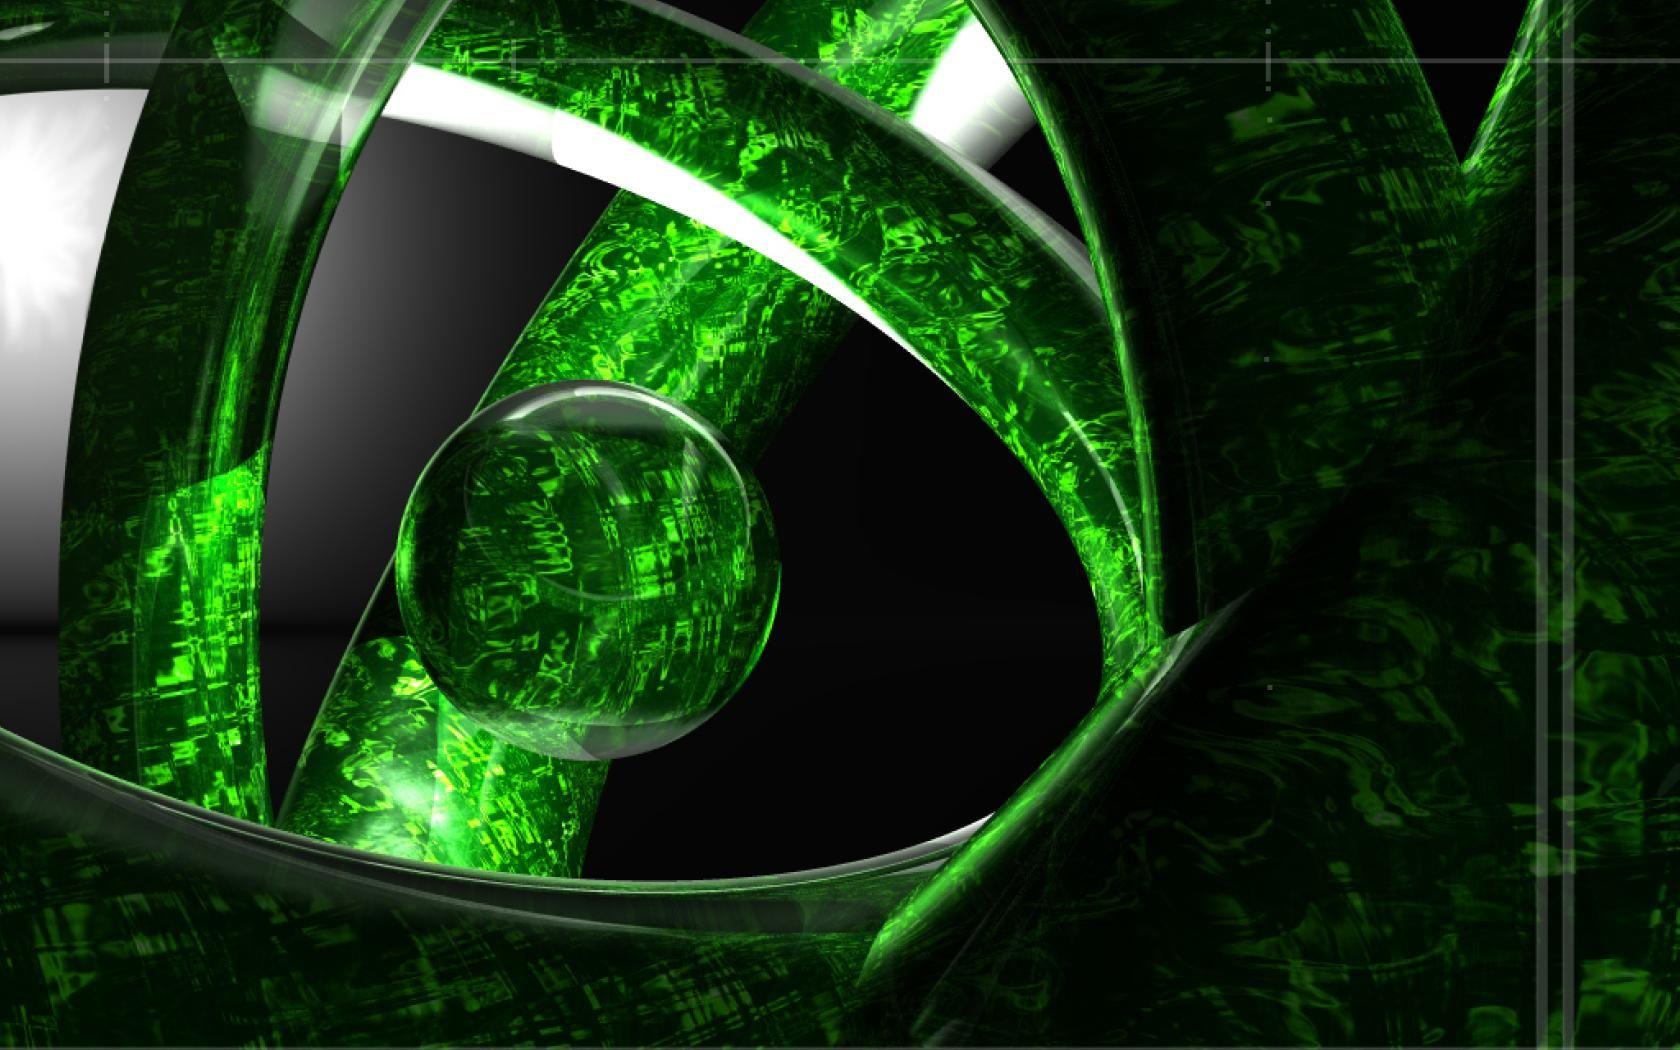 Cool Mobile 3d Wallpapers Hd: Abstract-green-things-ball-sphere-3d-artwork